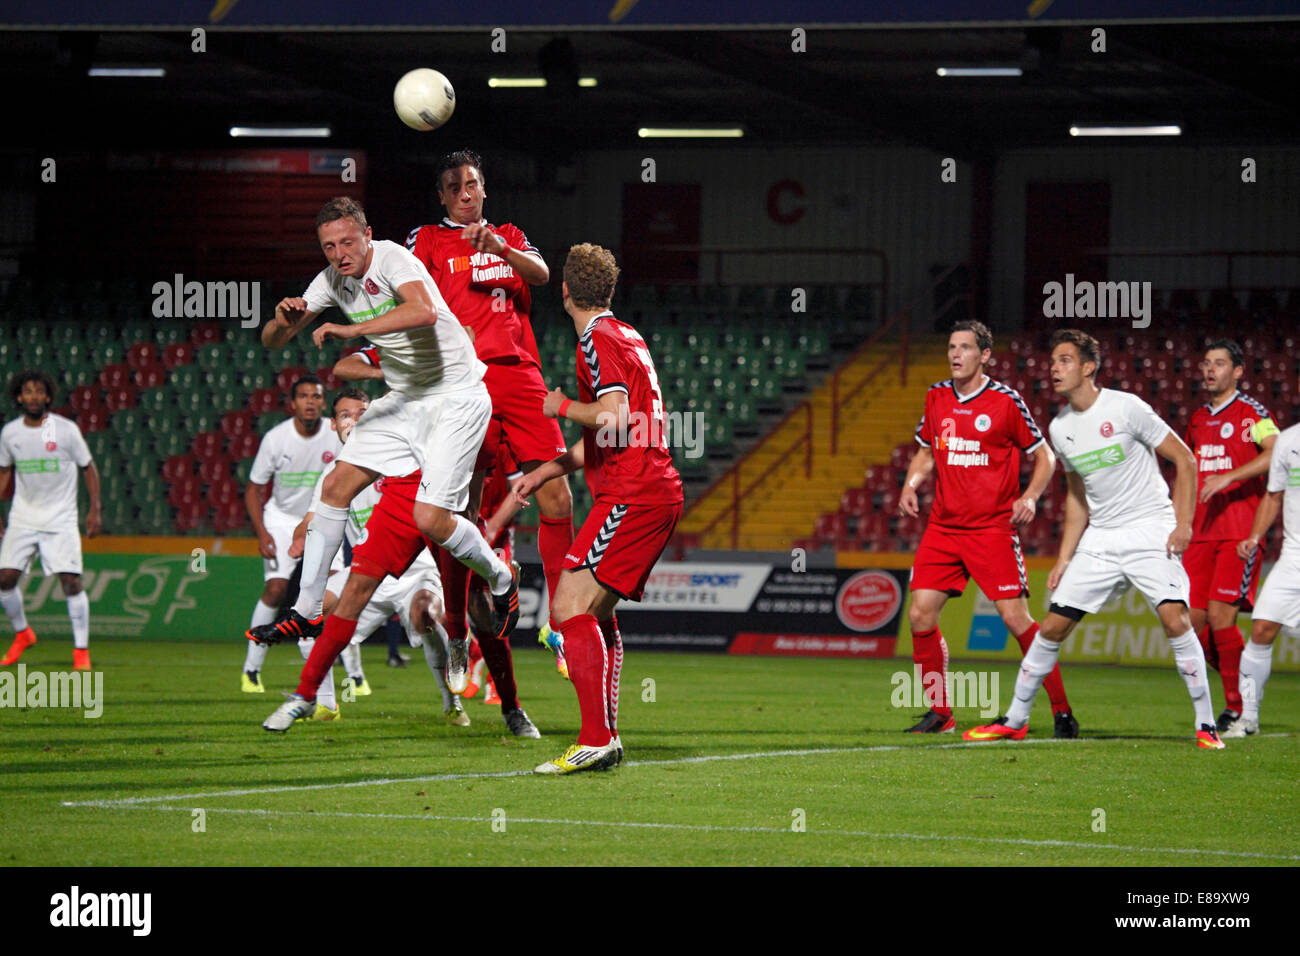 sports, football, Regional League West, 2014/2015, Rot Weiss Oberhausen versus Fortuna Duesseldorf U23 3:1, Stadium - Stock Image